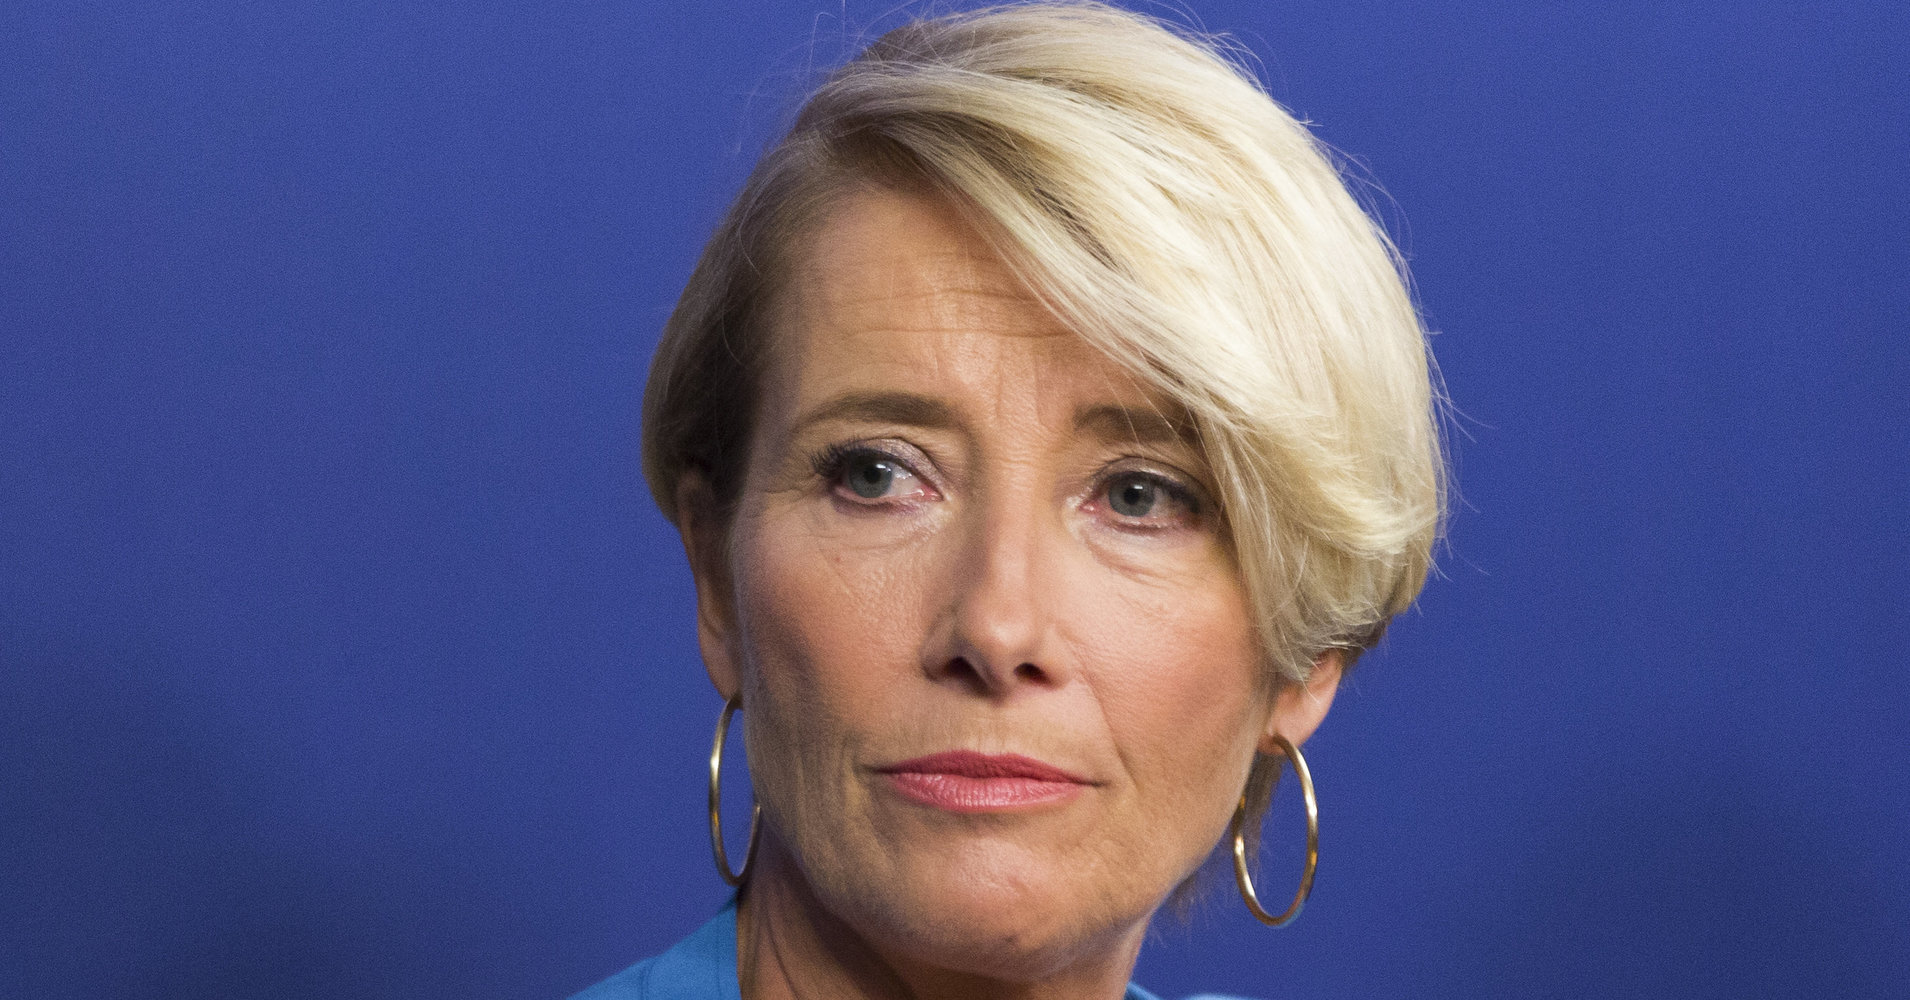 Emma Thompson Says Real-Life Heartbreak Inspired 'Love Actually' Performance